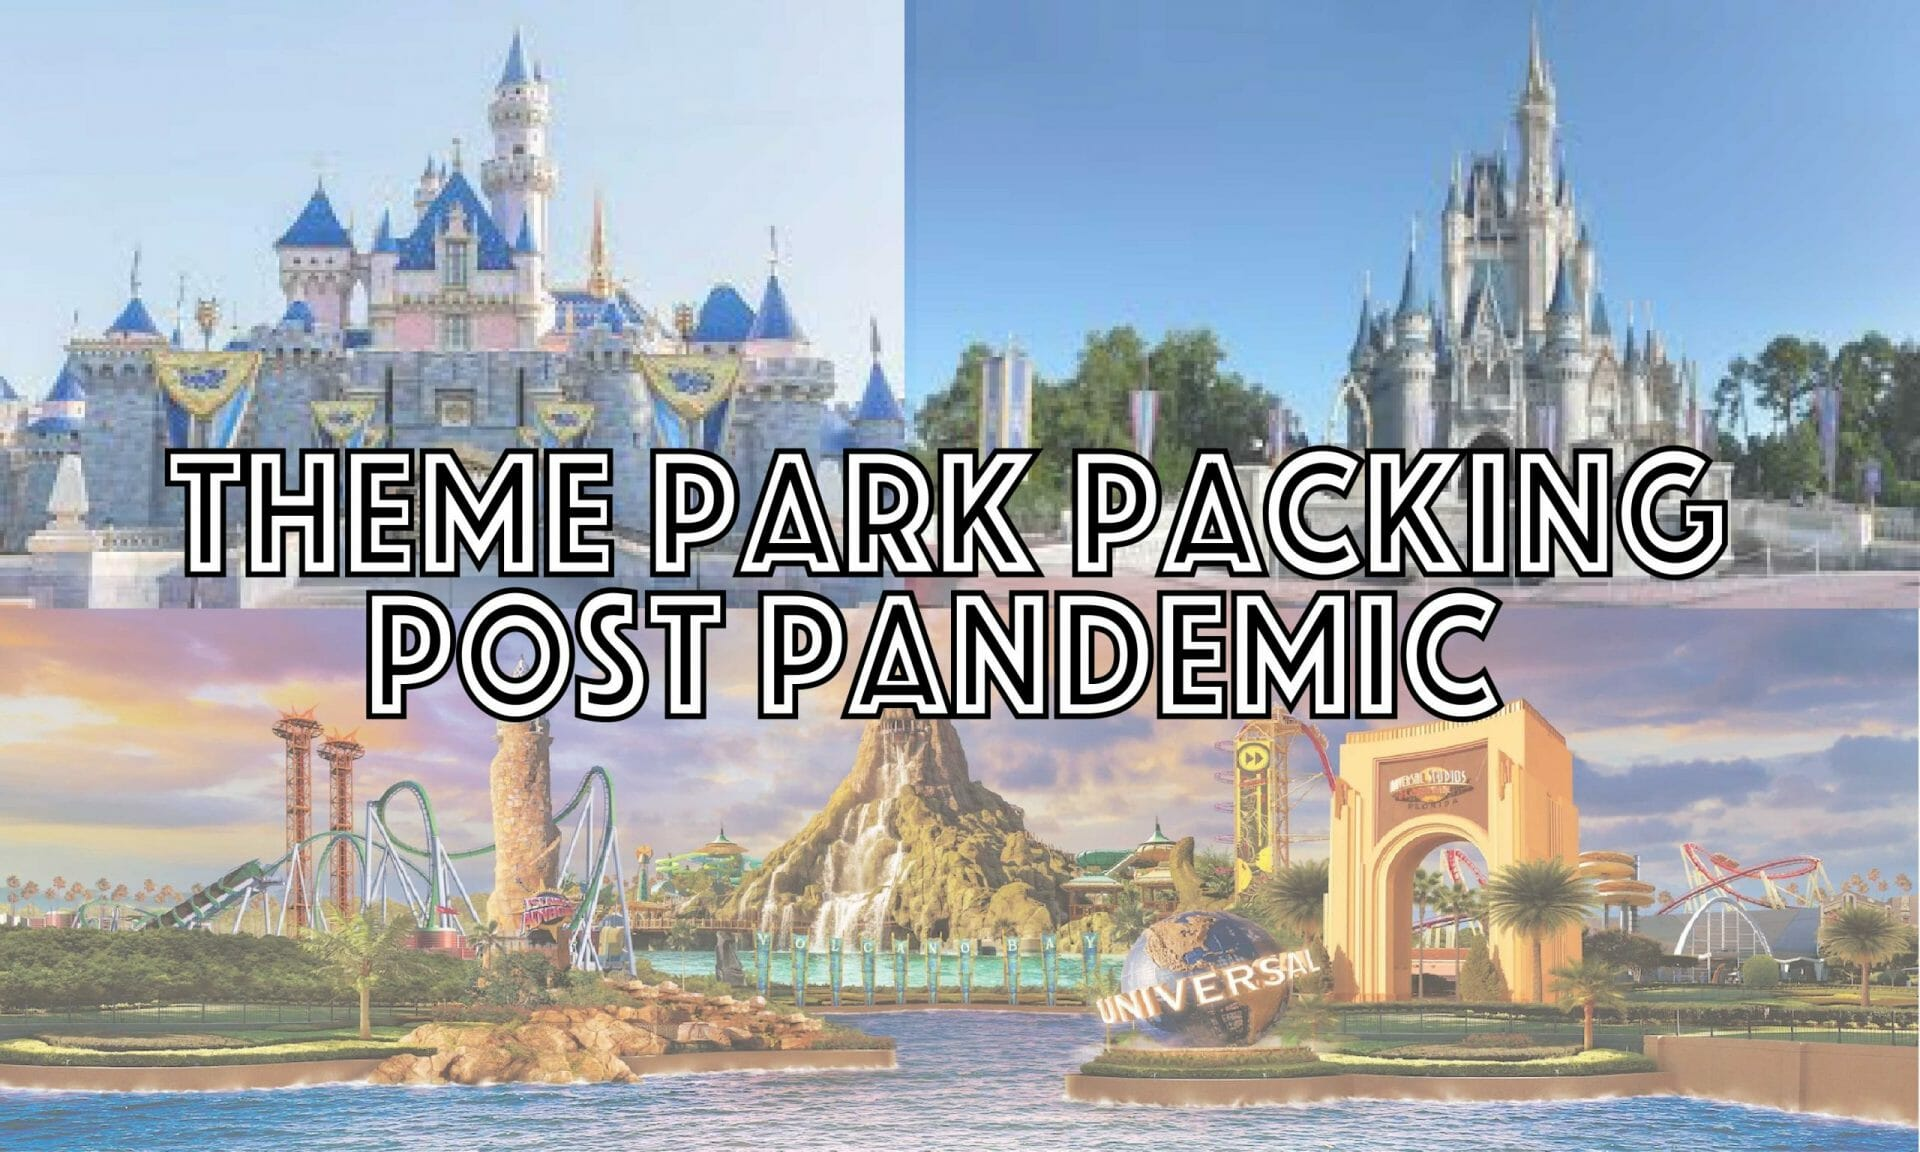 Park Packing List Post Pandemic